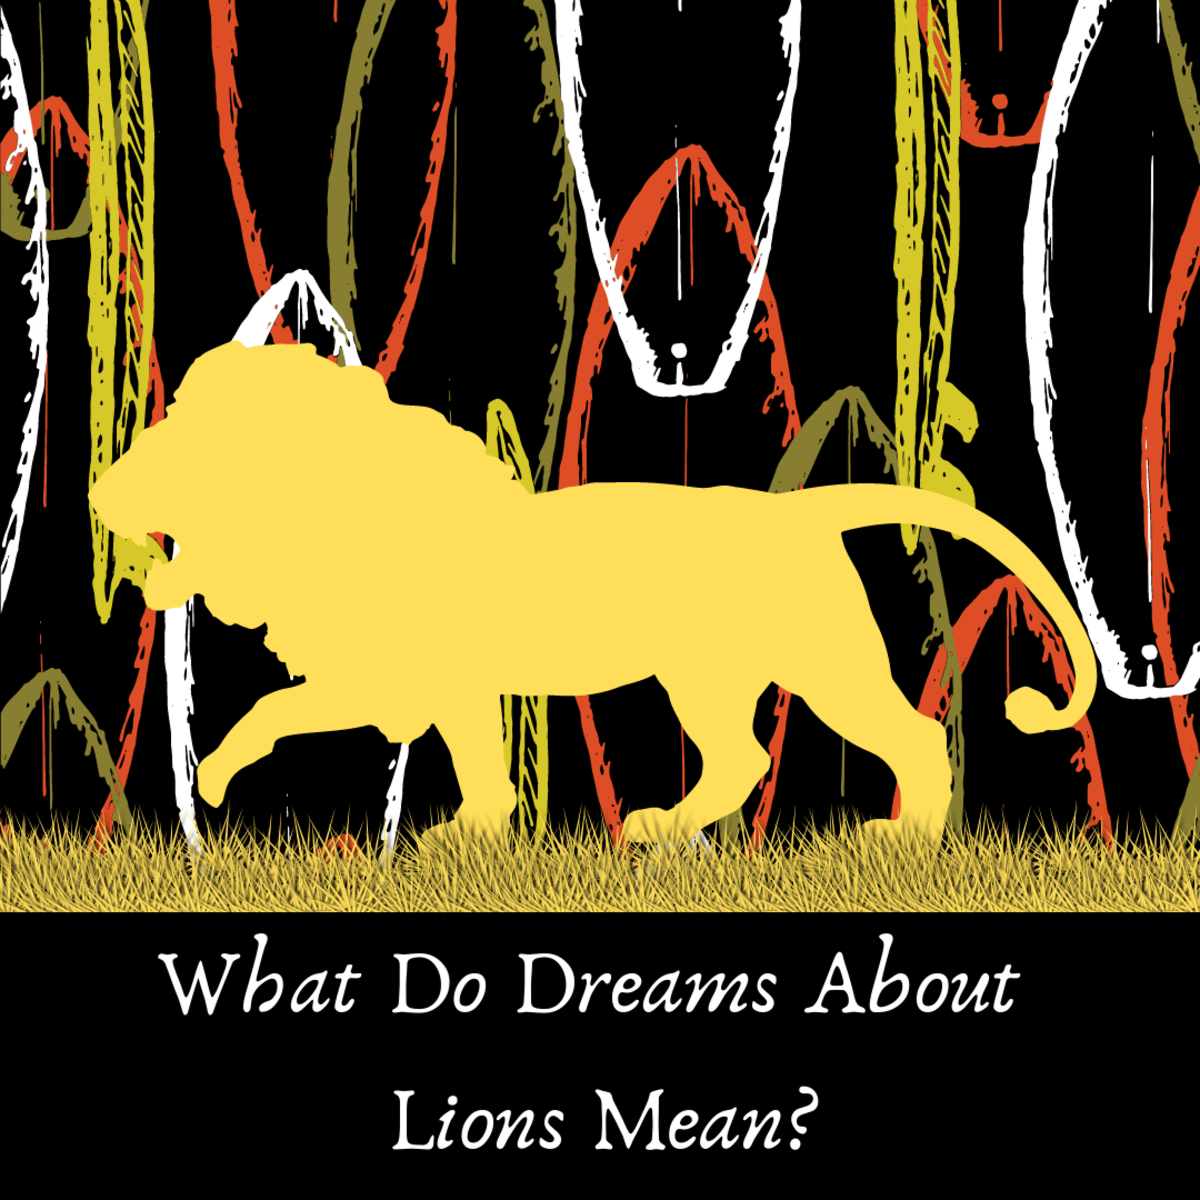 What Do Dreams About Lions Mean? 8 Meanings of Lions in Dreams